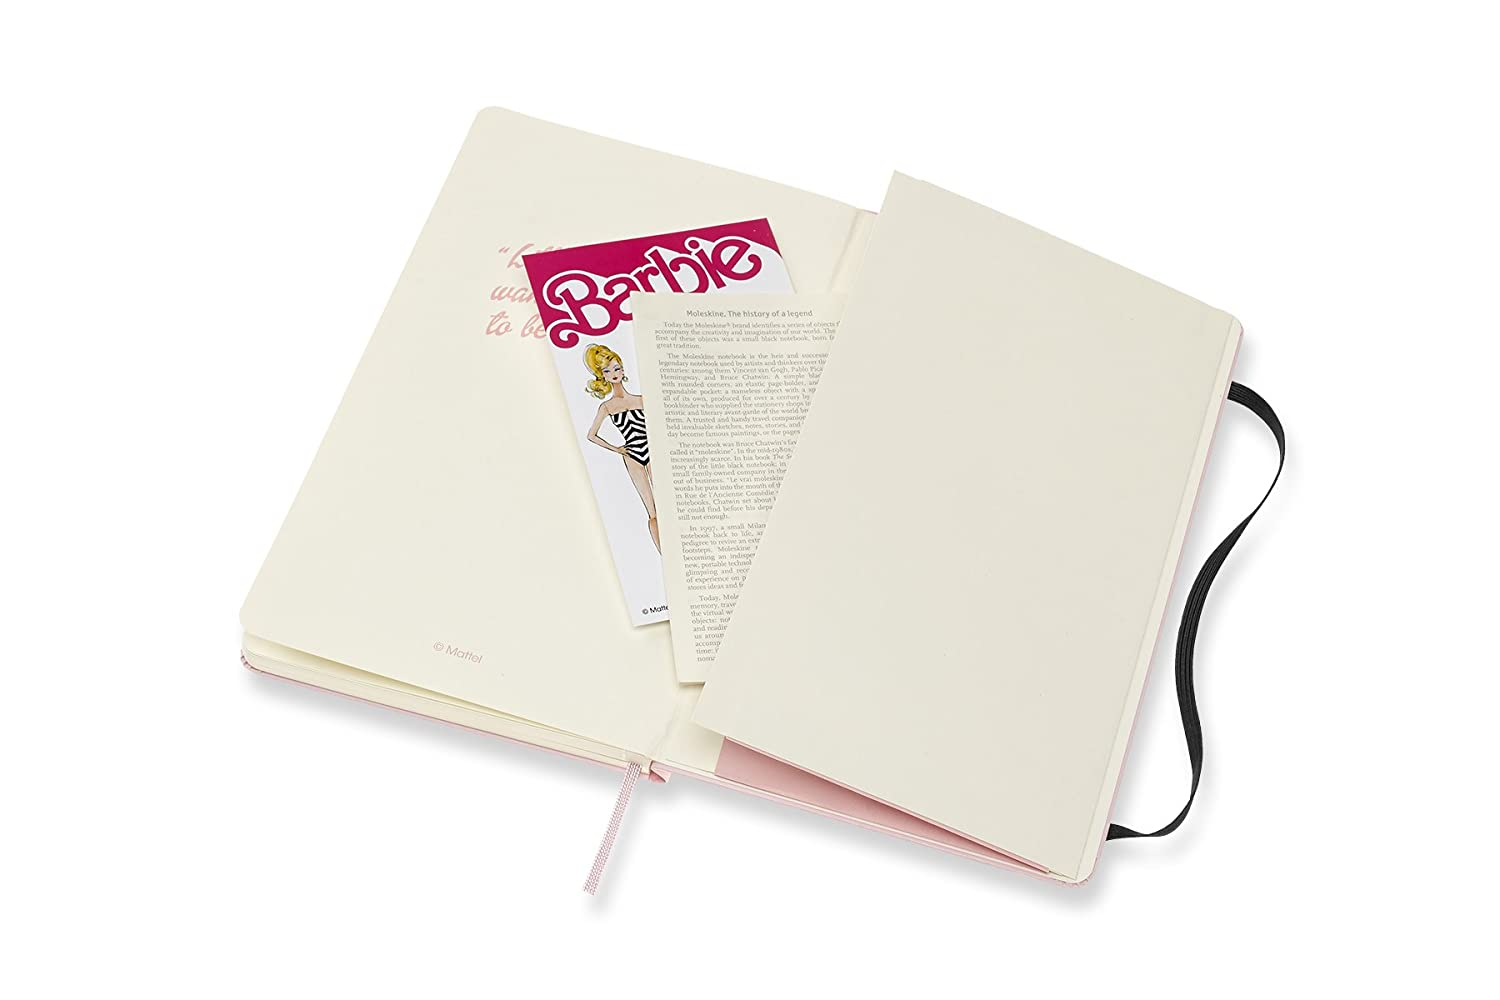 Amazon.com : Moleskine Limited Edition Notebook Barbie Swimsuit, Large, Plain, Pink, Hard Cover (5 x 8.25) : Office Products